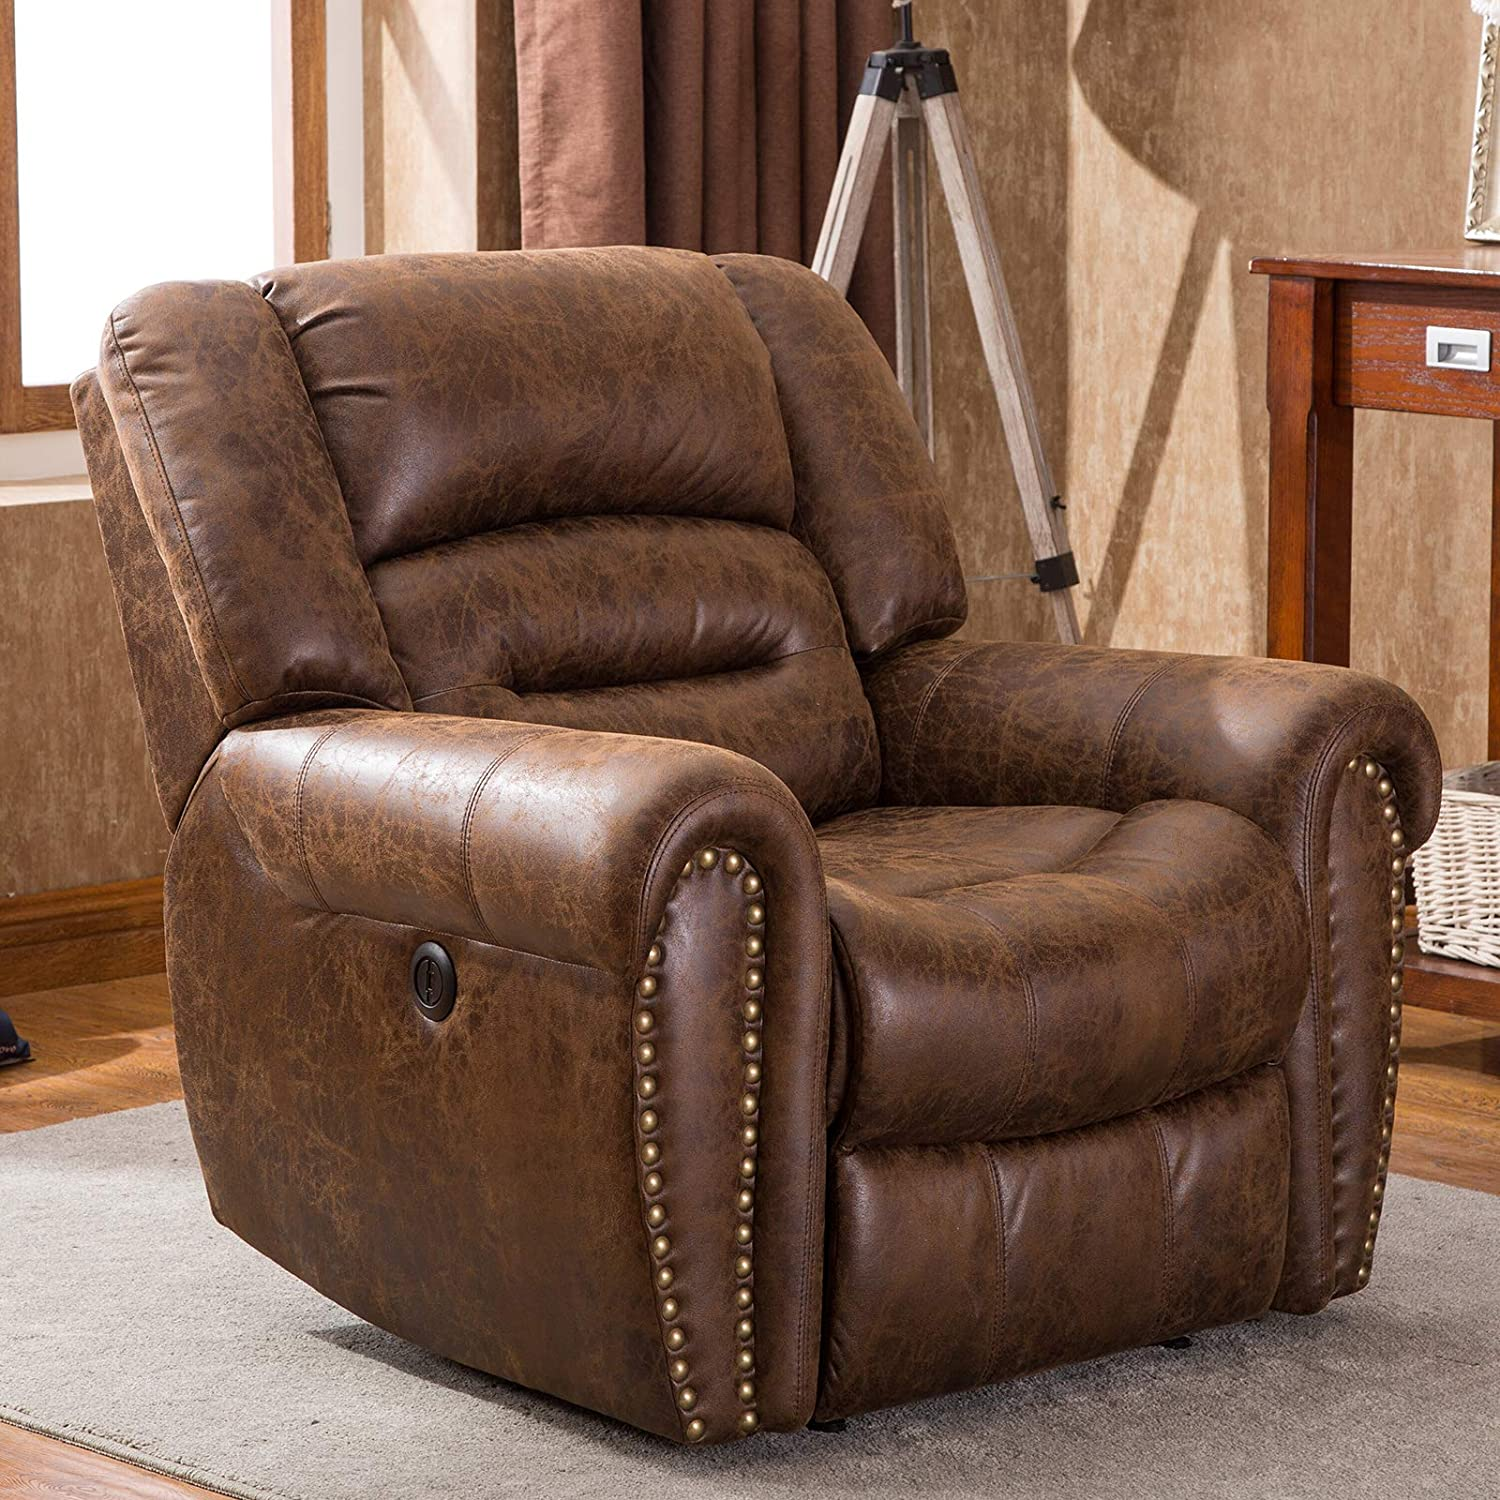 ANJ Electric Recliner most comfortable Reading Chair